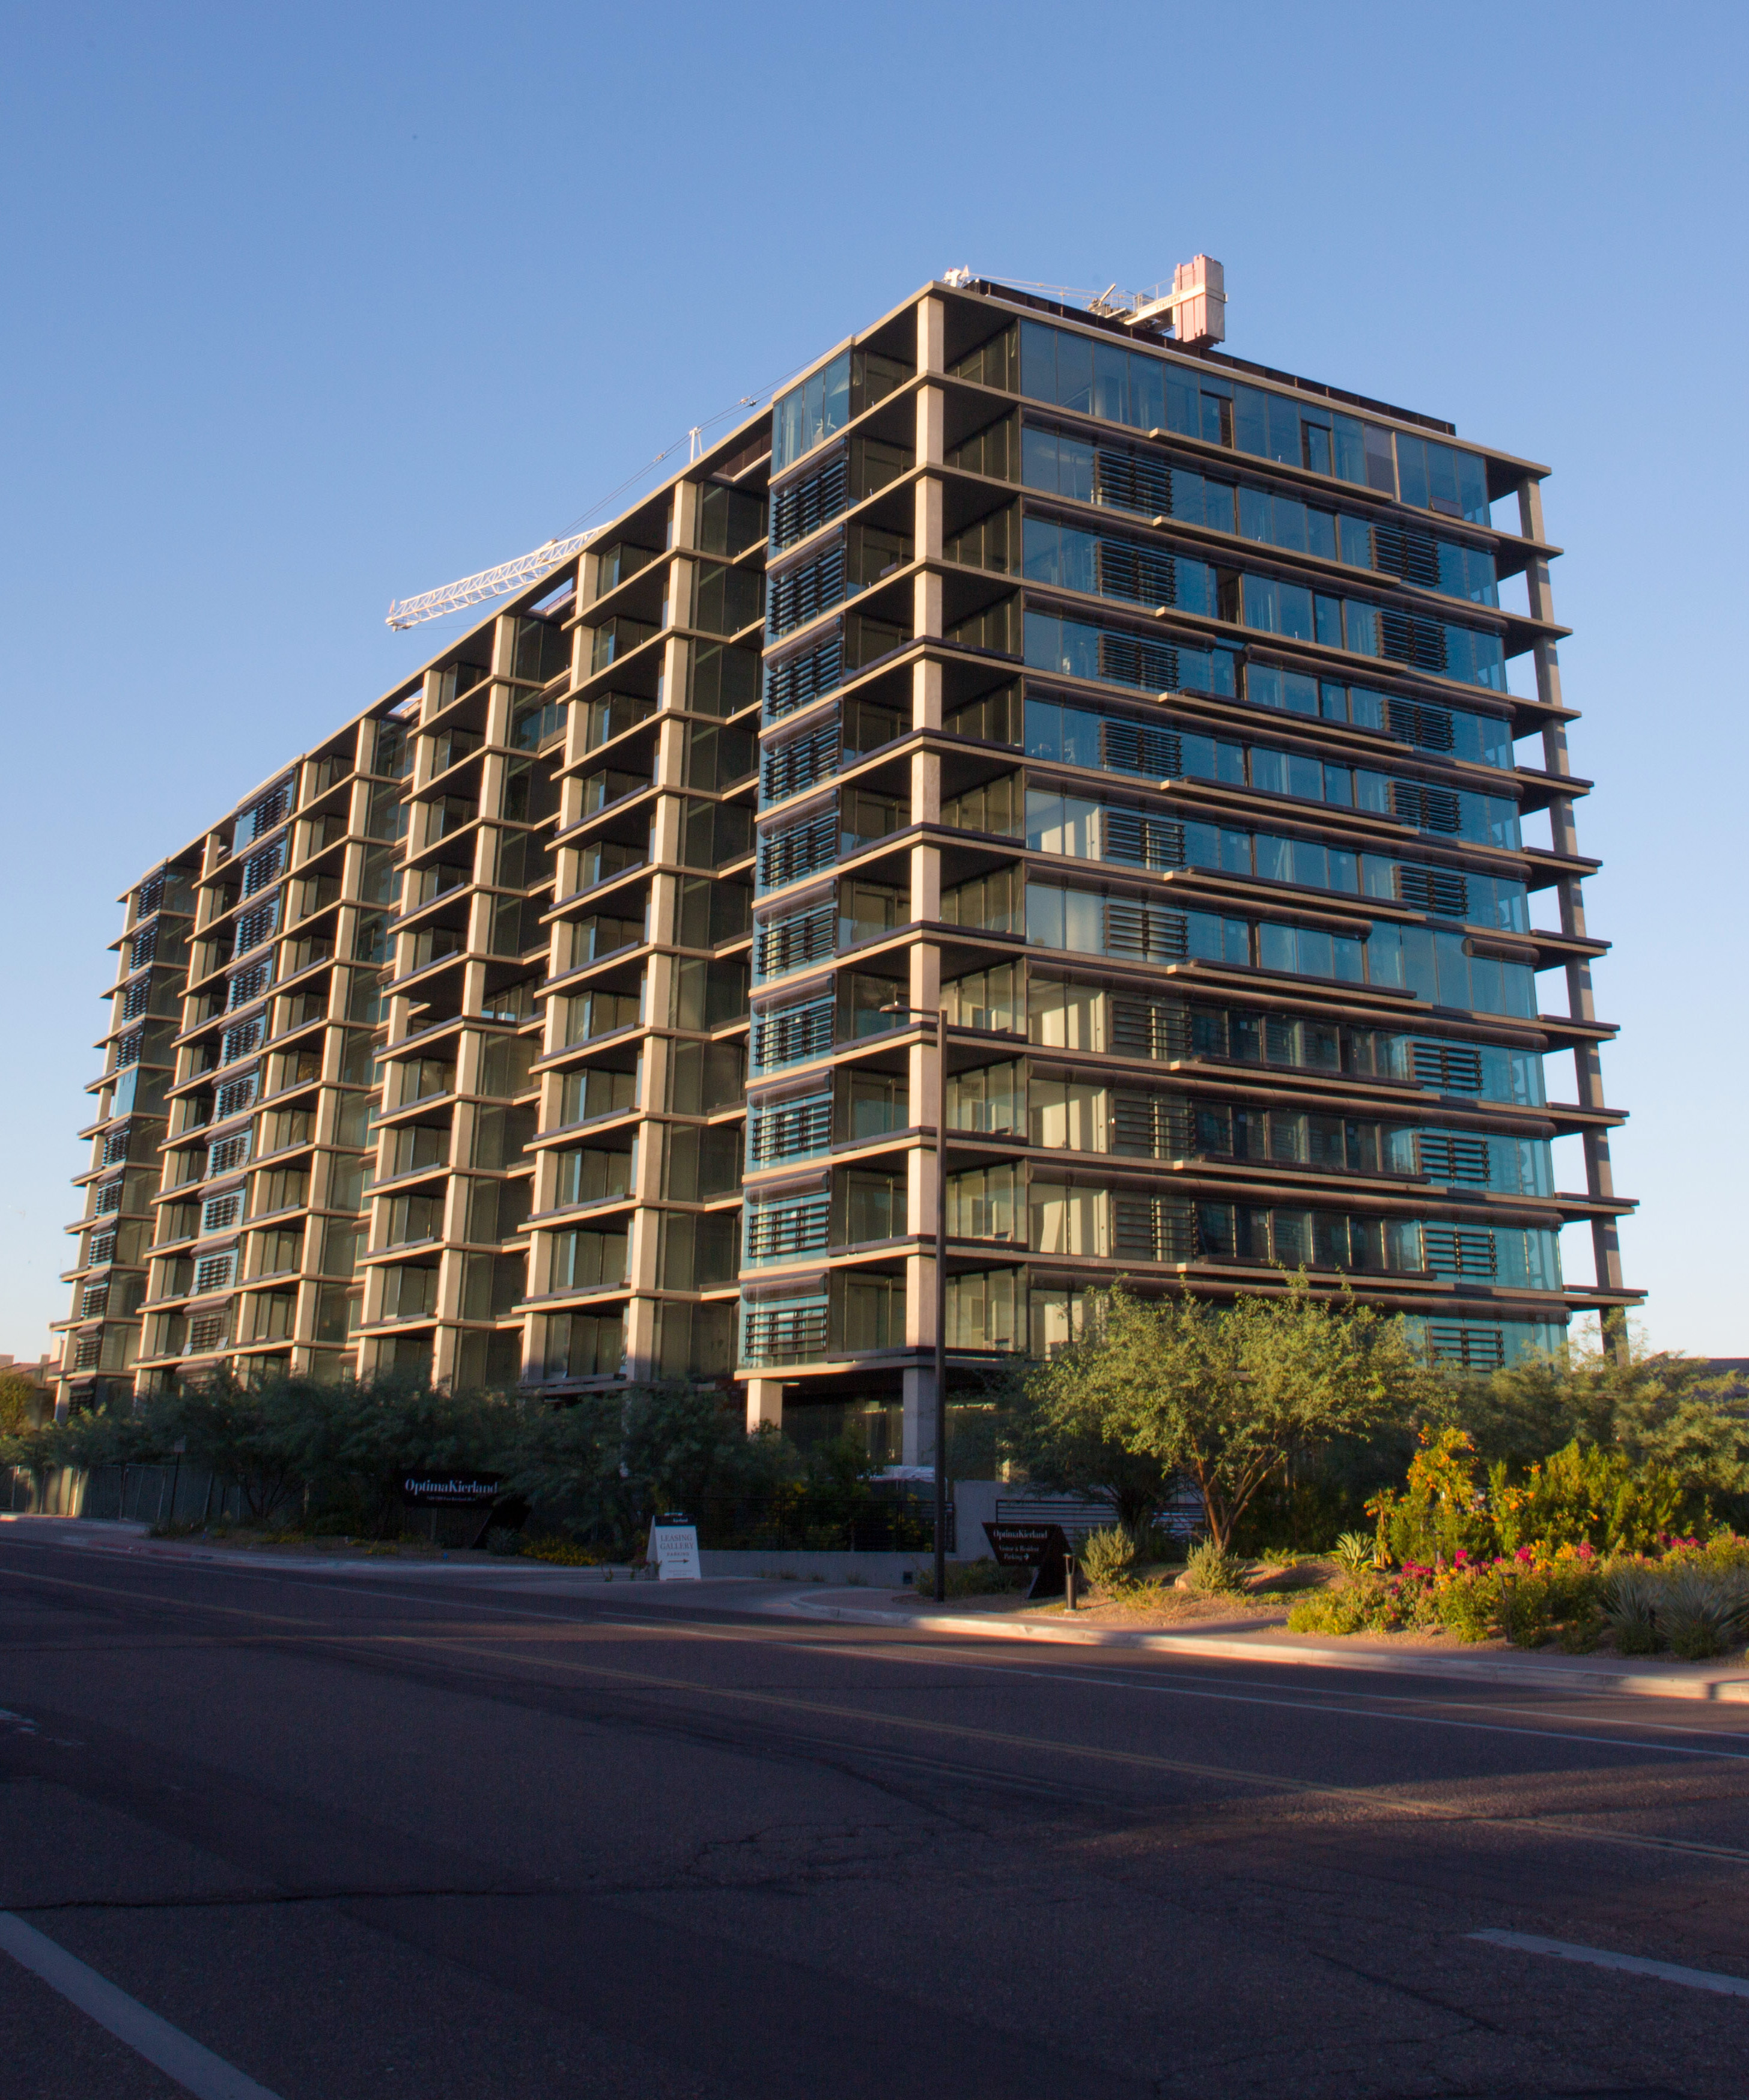 Scottsdale's Optima Kierland Luxury High-Rise Condominium Tower is More than 75 Percent Sold